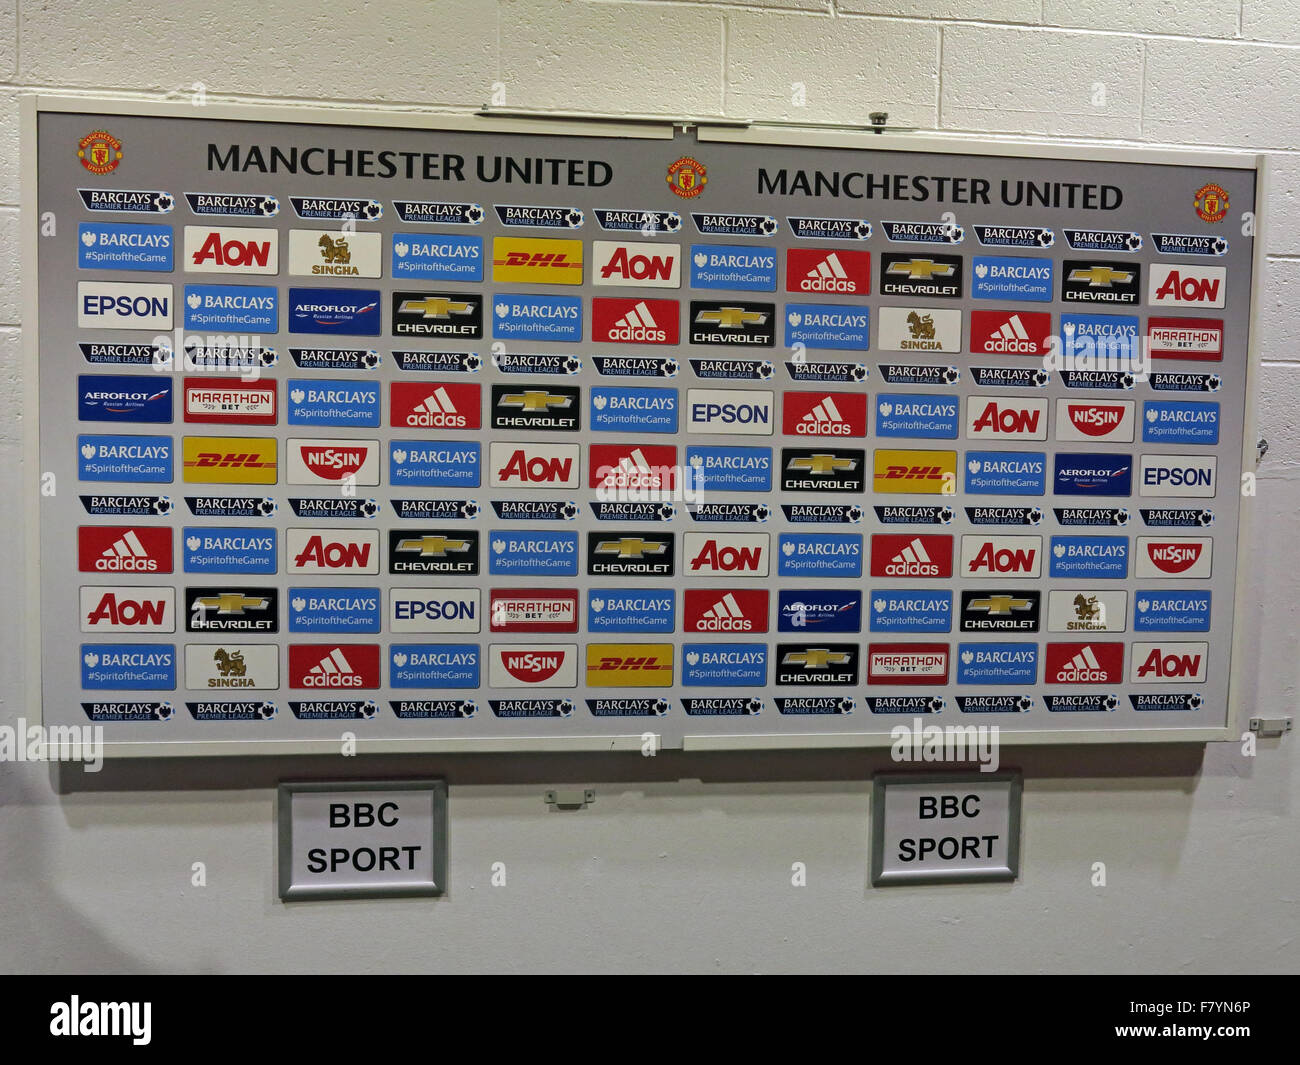 MUFC,BBC Sport, Manchester United interview board, Old Trafford, England,UK - Stock Image